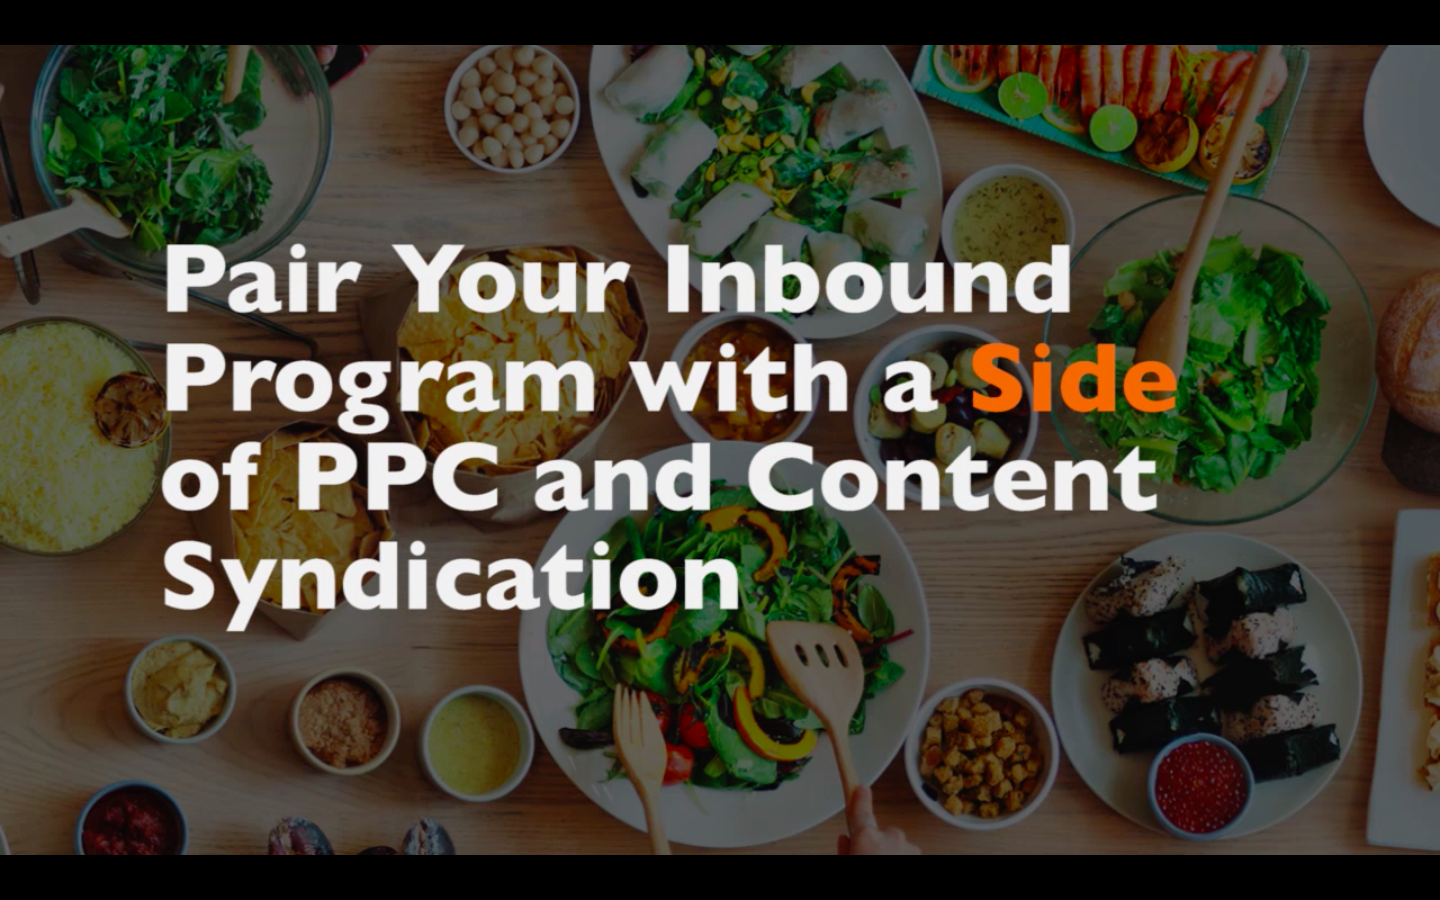 A B2B Digital Marketing Feast, Part 4/5: Pairing Your Inbound Program with a Side of PPC and Content Syndication